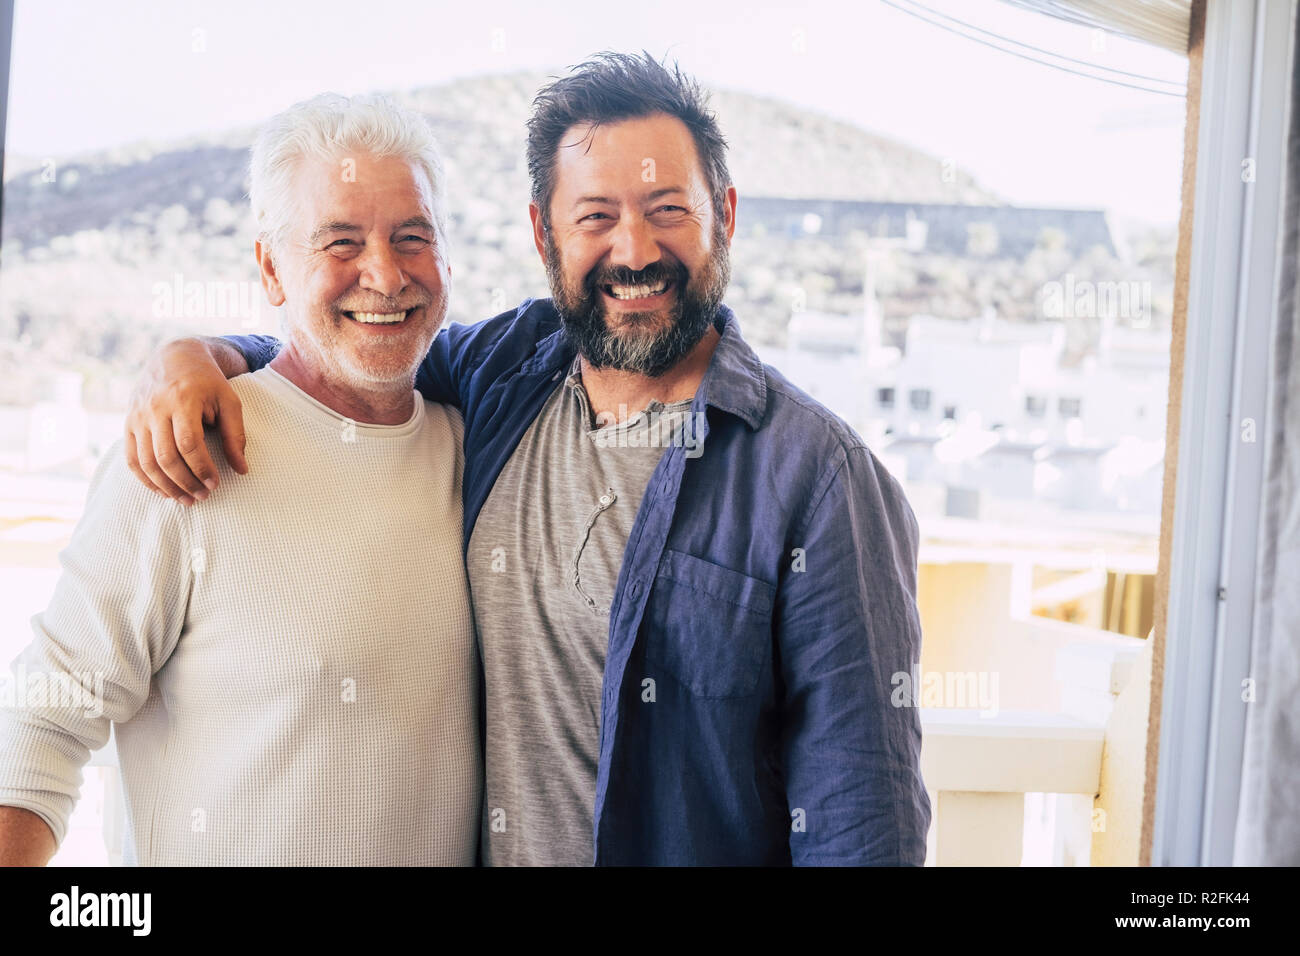 couple of men hugging and stay together in friendship and relationship. father and son different ages smi.ing and look at the camera. portrait of cheerful caucasian people mixed generations enjoy life - Stock Image